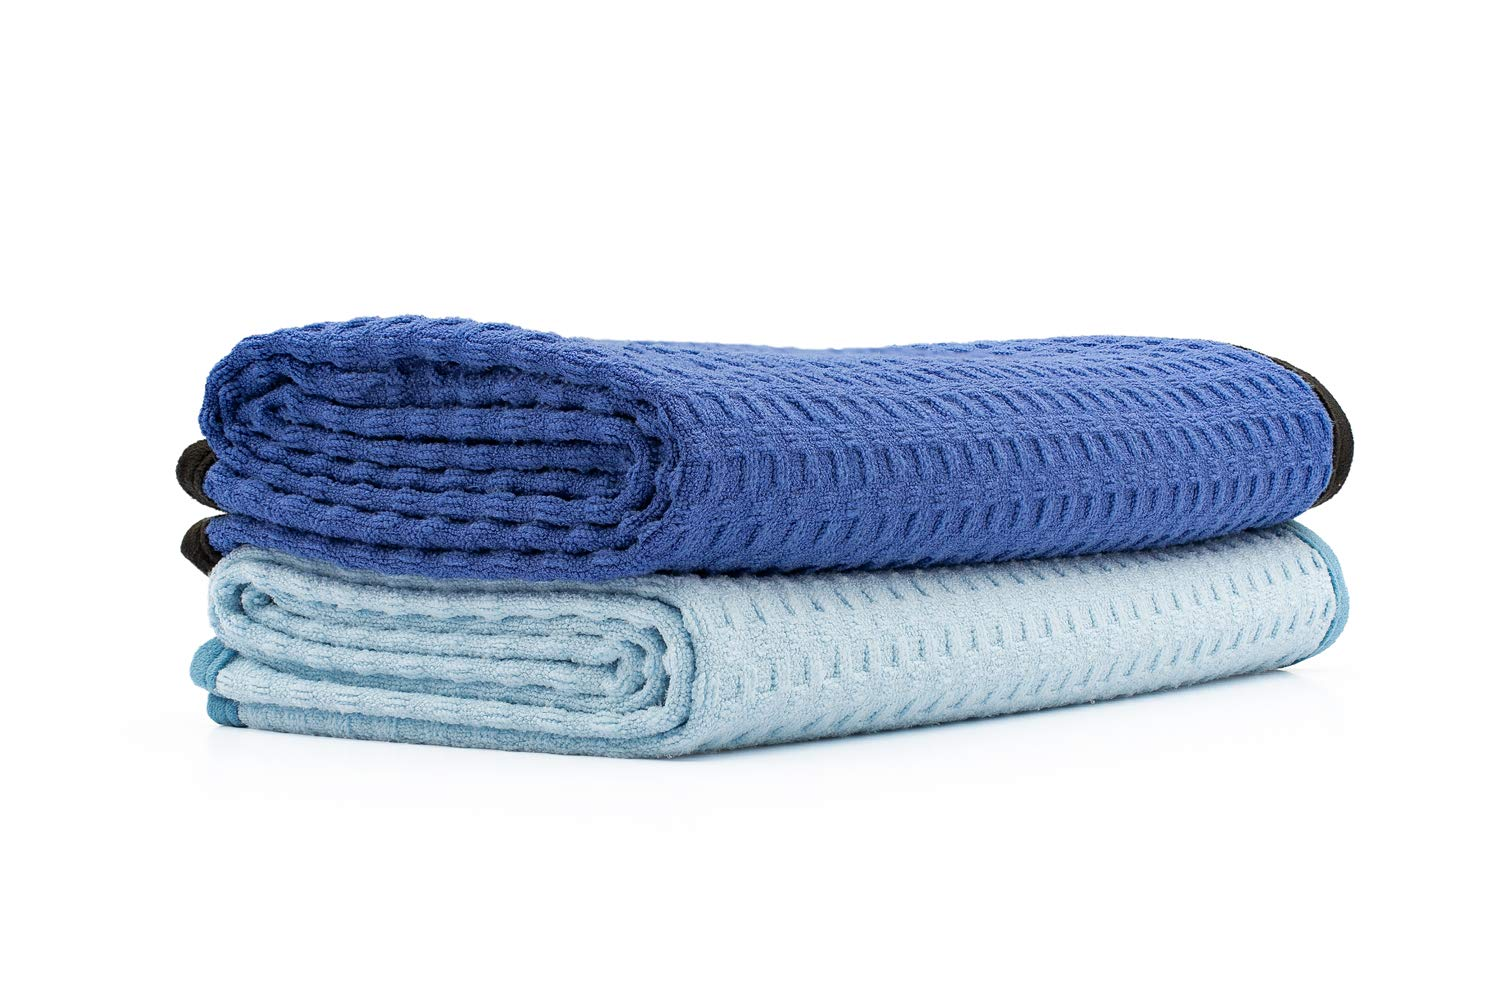 The Rag Company - Dry Me A River - Professional Korean 70/30 Blend Microfiber Waffle-Weave Drying & Detailing Towels, Soft Suede Edges, 390GSM, 20in x 40in, Light Blue & Royal Blue (2-Pack)